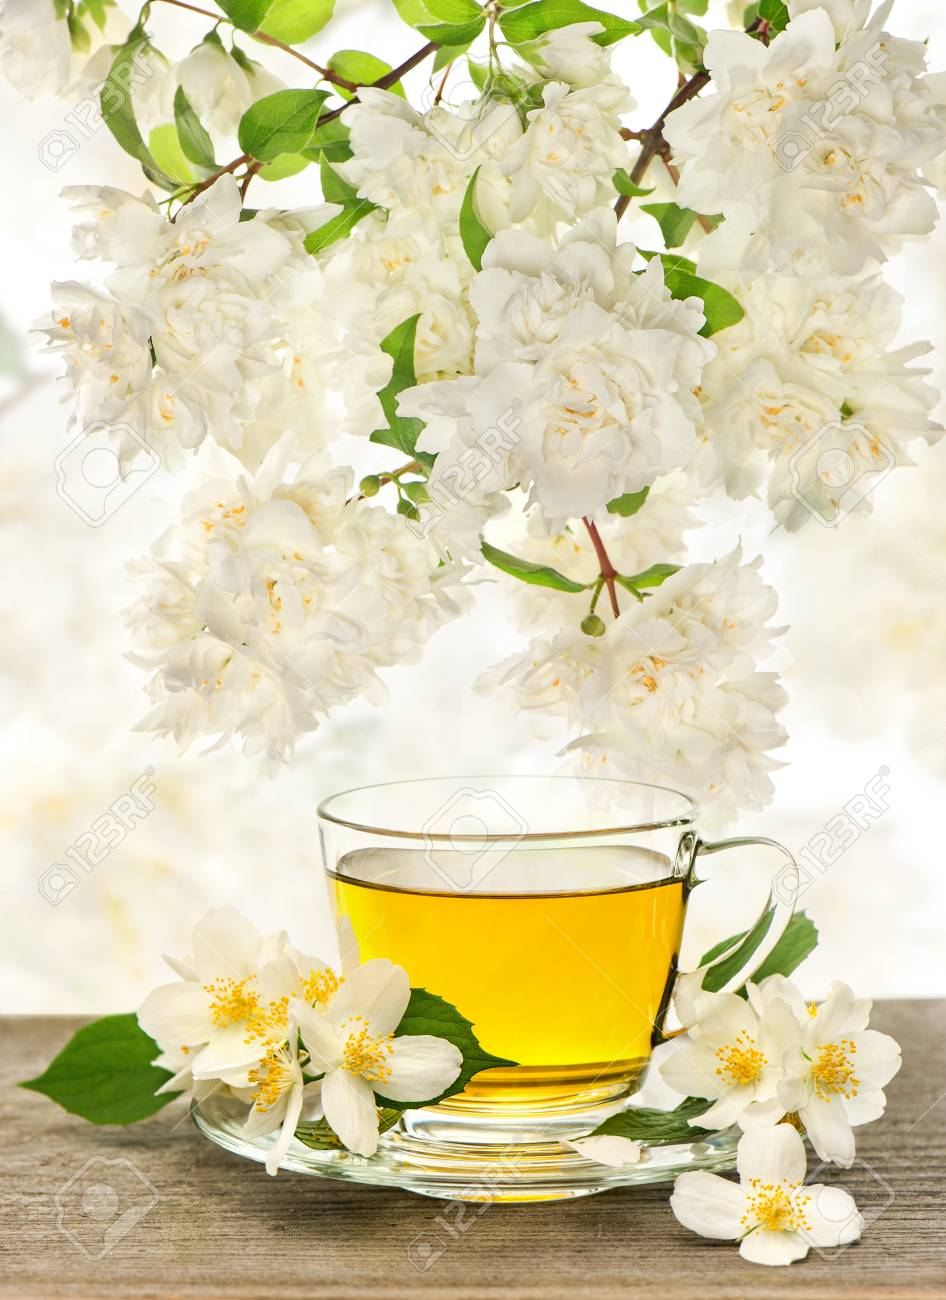 Cup Of Tea With Jasmine Flowers Over Nature Blurred Background Stock